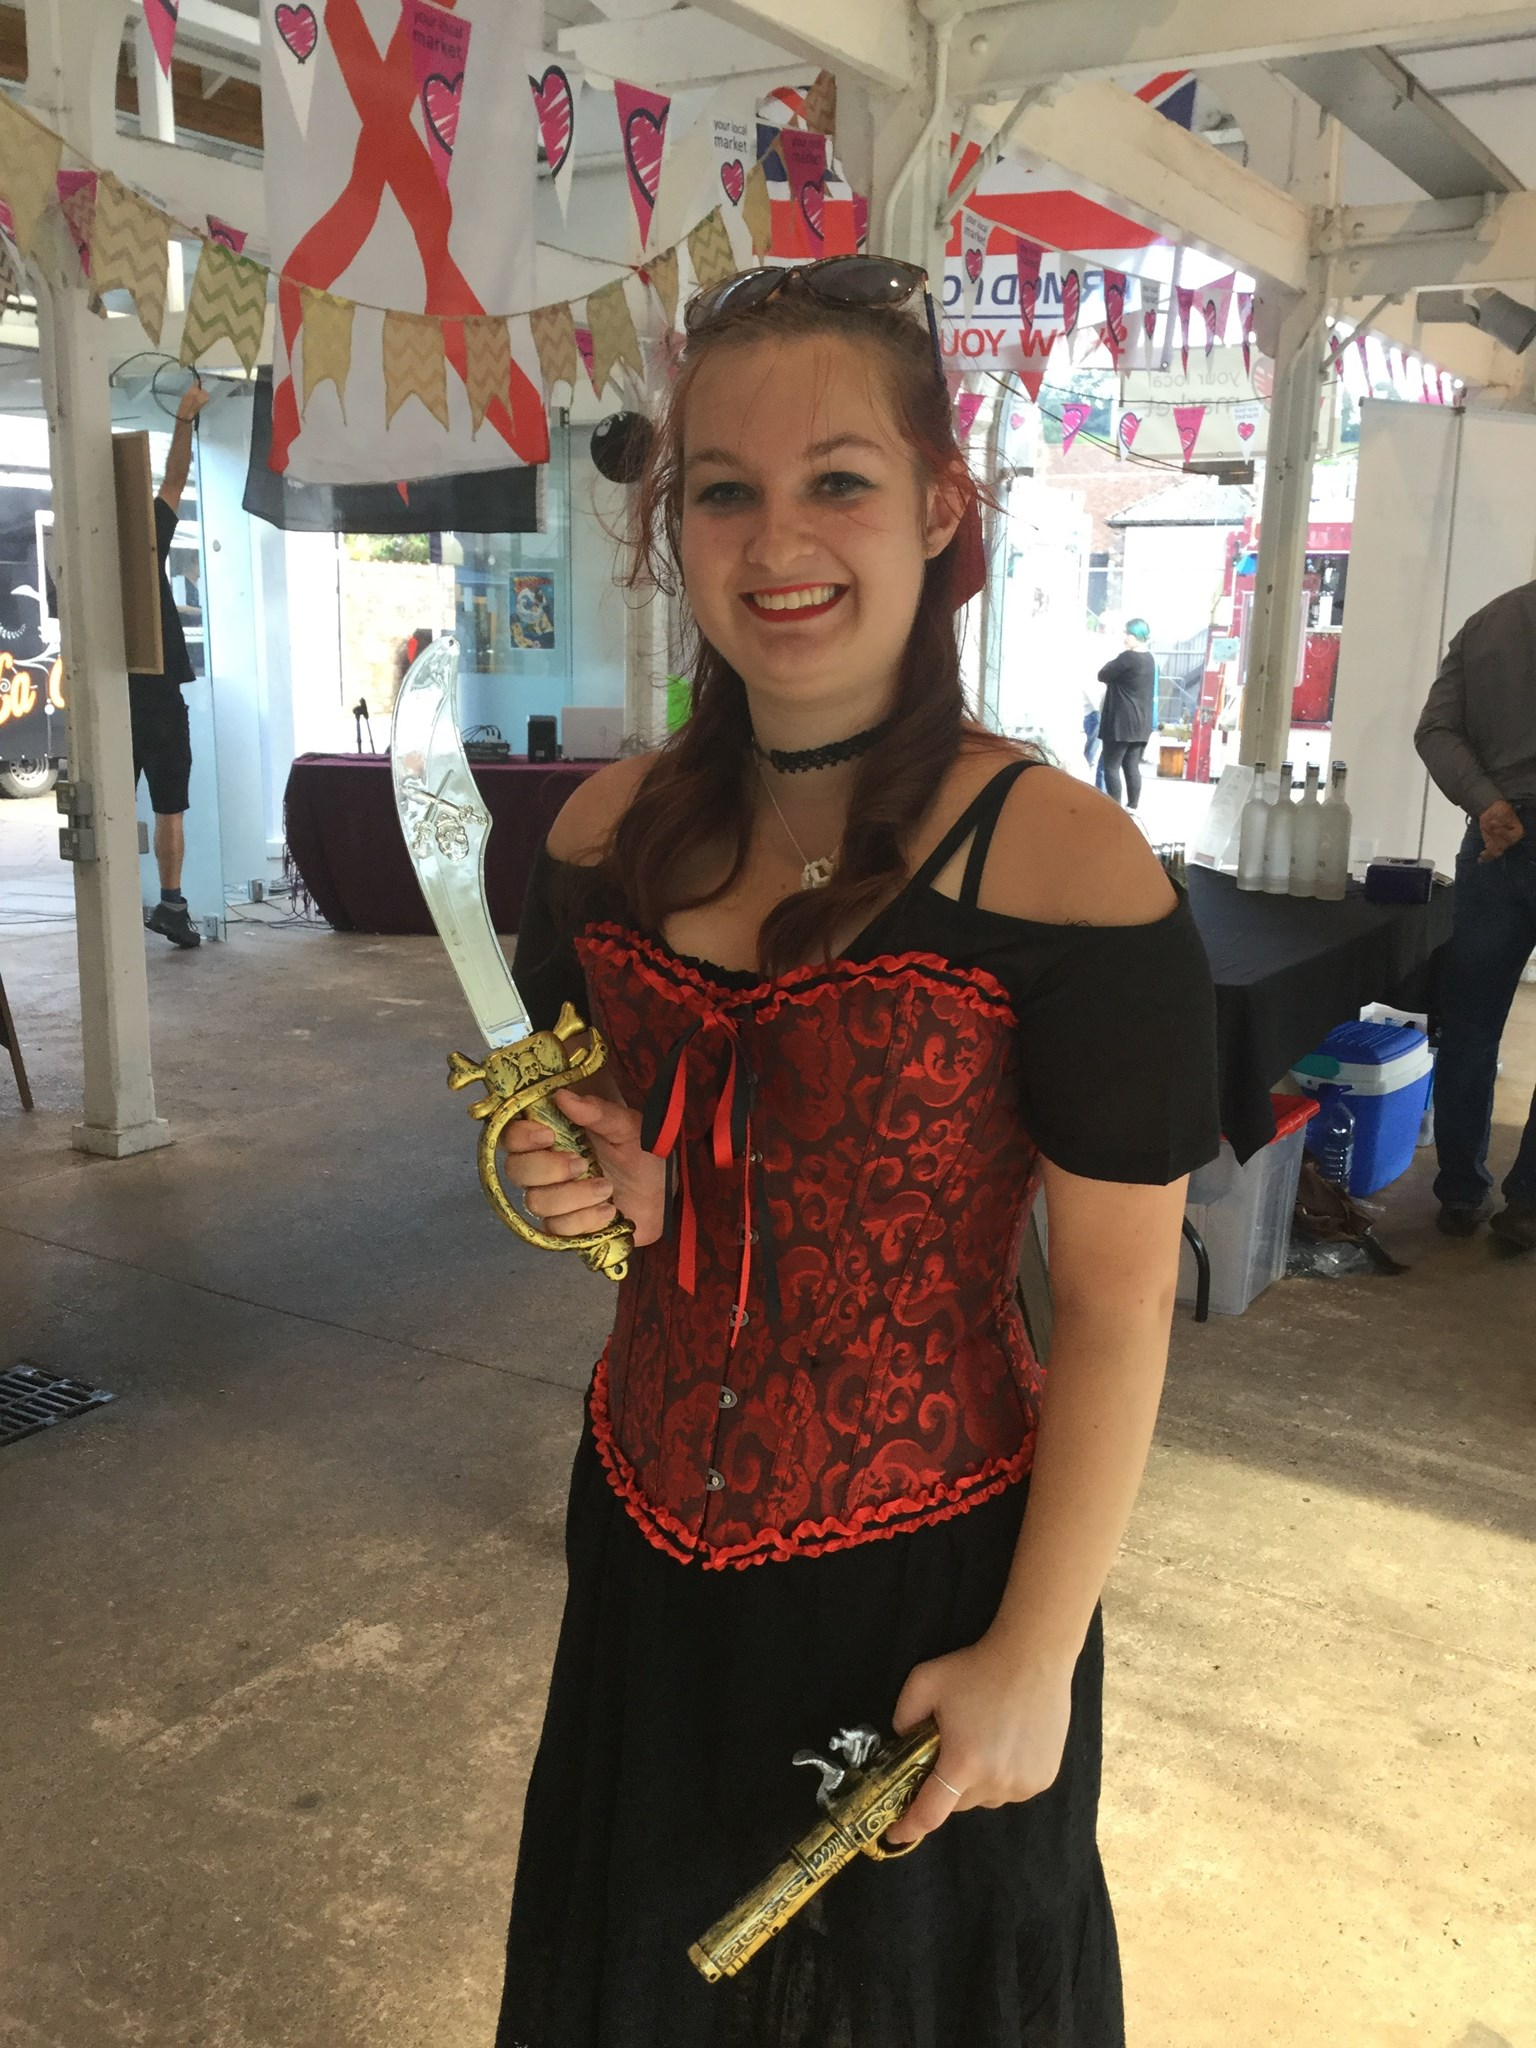 Clarissa at the Pirate Streetfood event Aug 2017